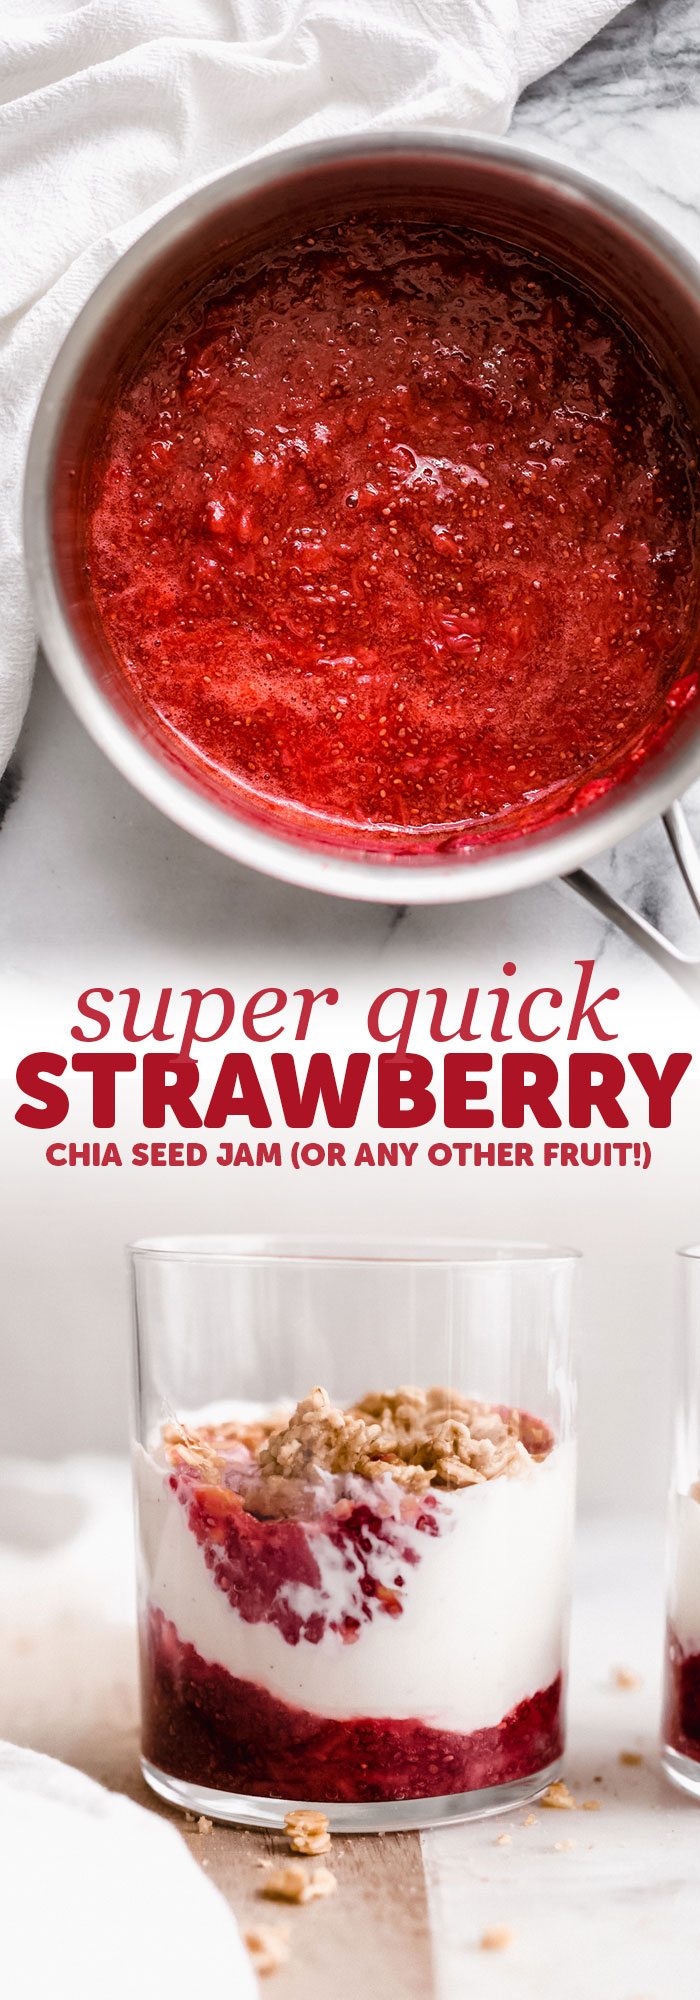 Super Quick Chia Seed Jam - Learn how to make homemade chia seed jam using all sorts of different fruit! This jam is much healthier than traditional jam and tastes great! #chiaseedjam #chiajaam #homemadejam #jamrecipe #chiaseedjamrecipe | Littlespicejar.com